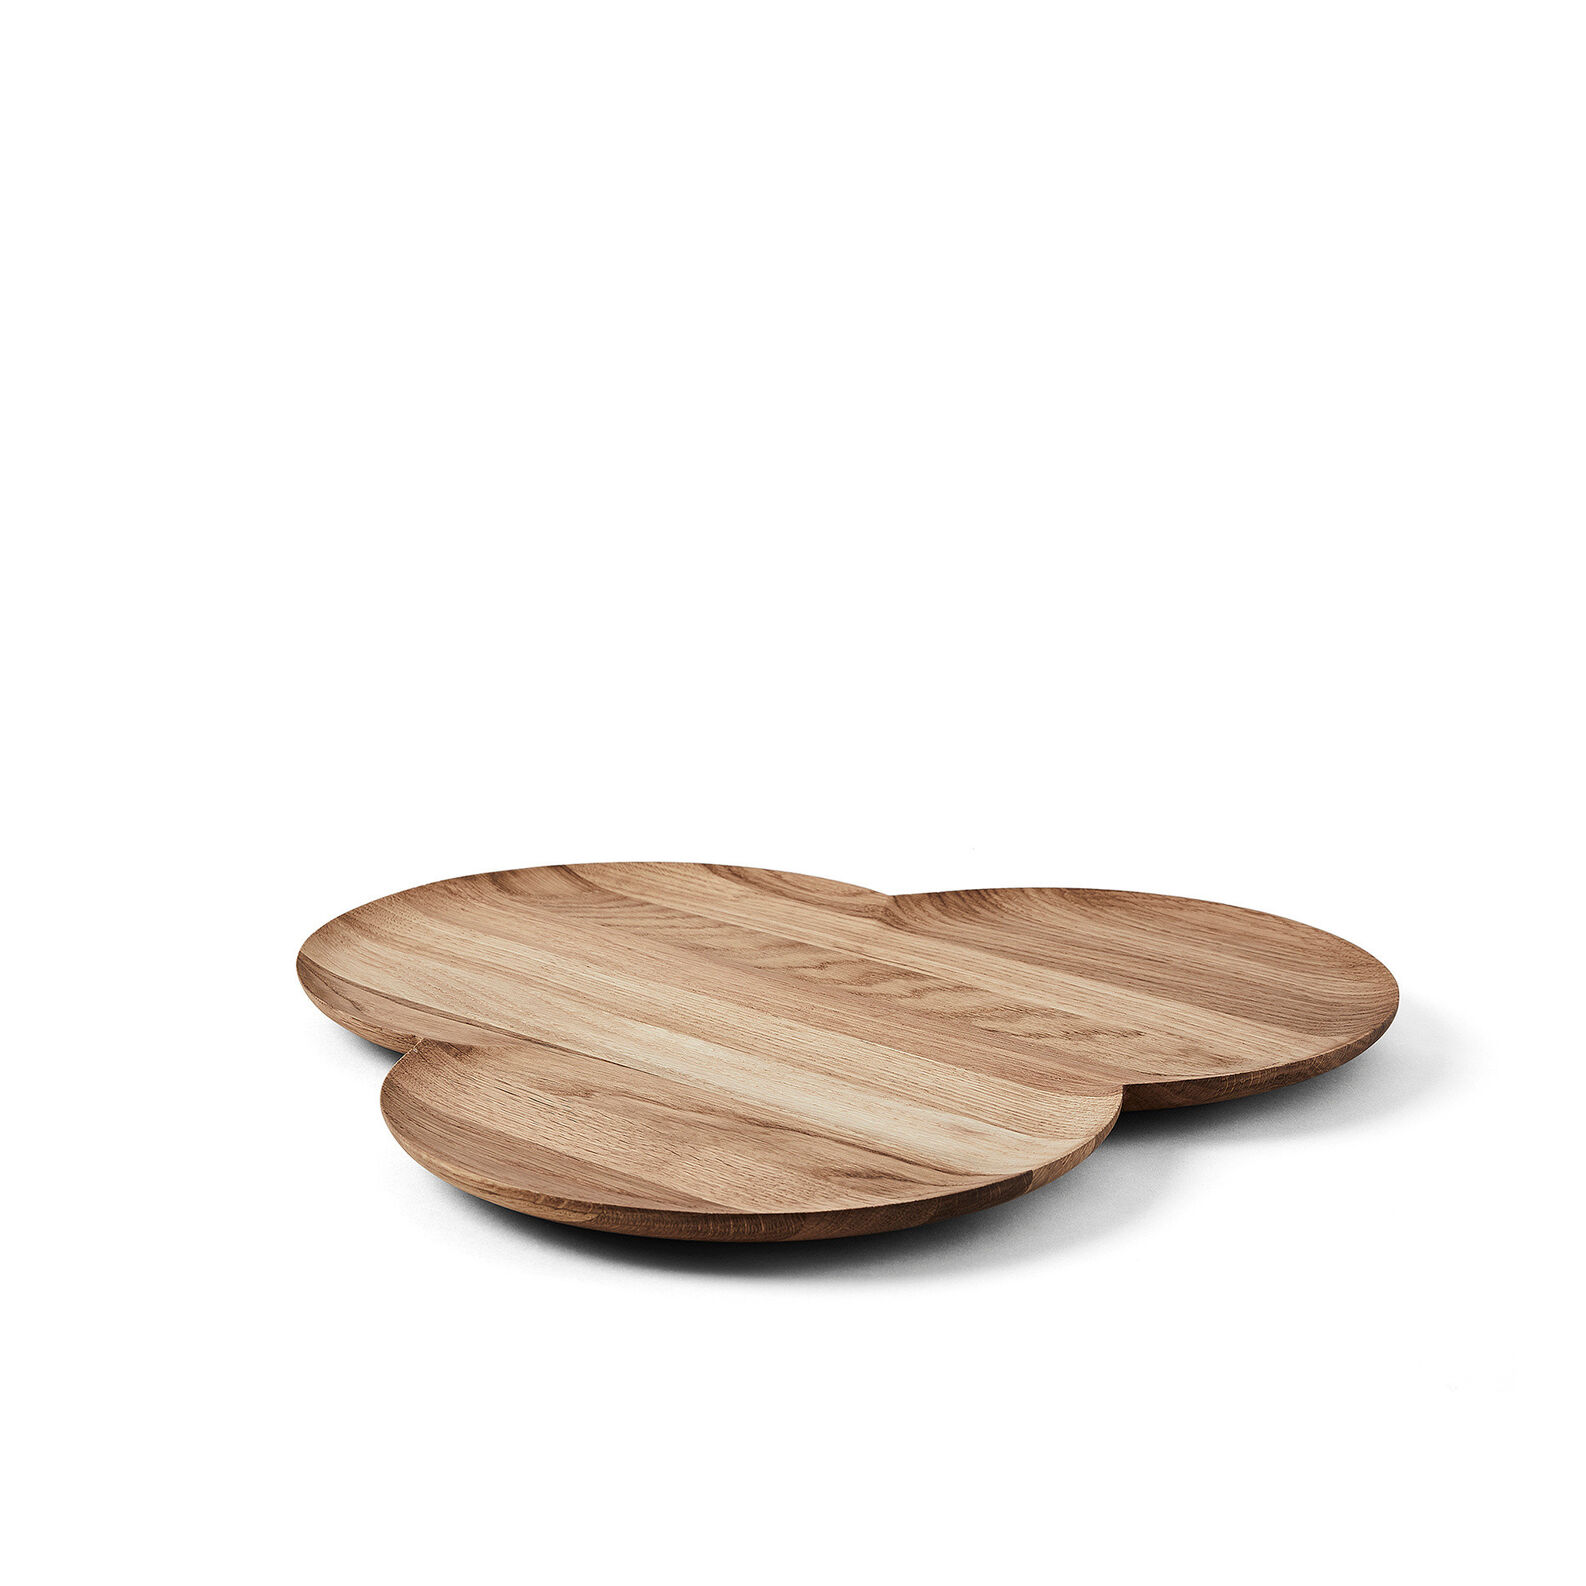 Oak wood tray by Agustina Bottoni